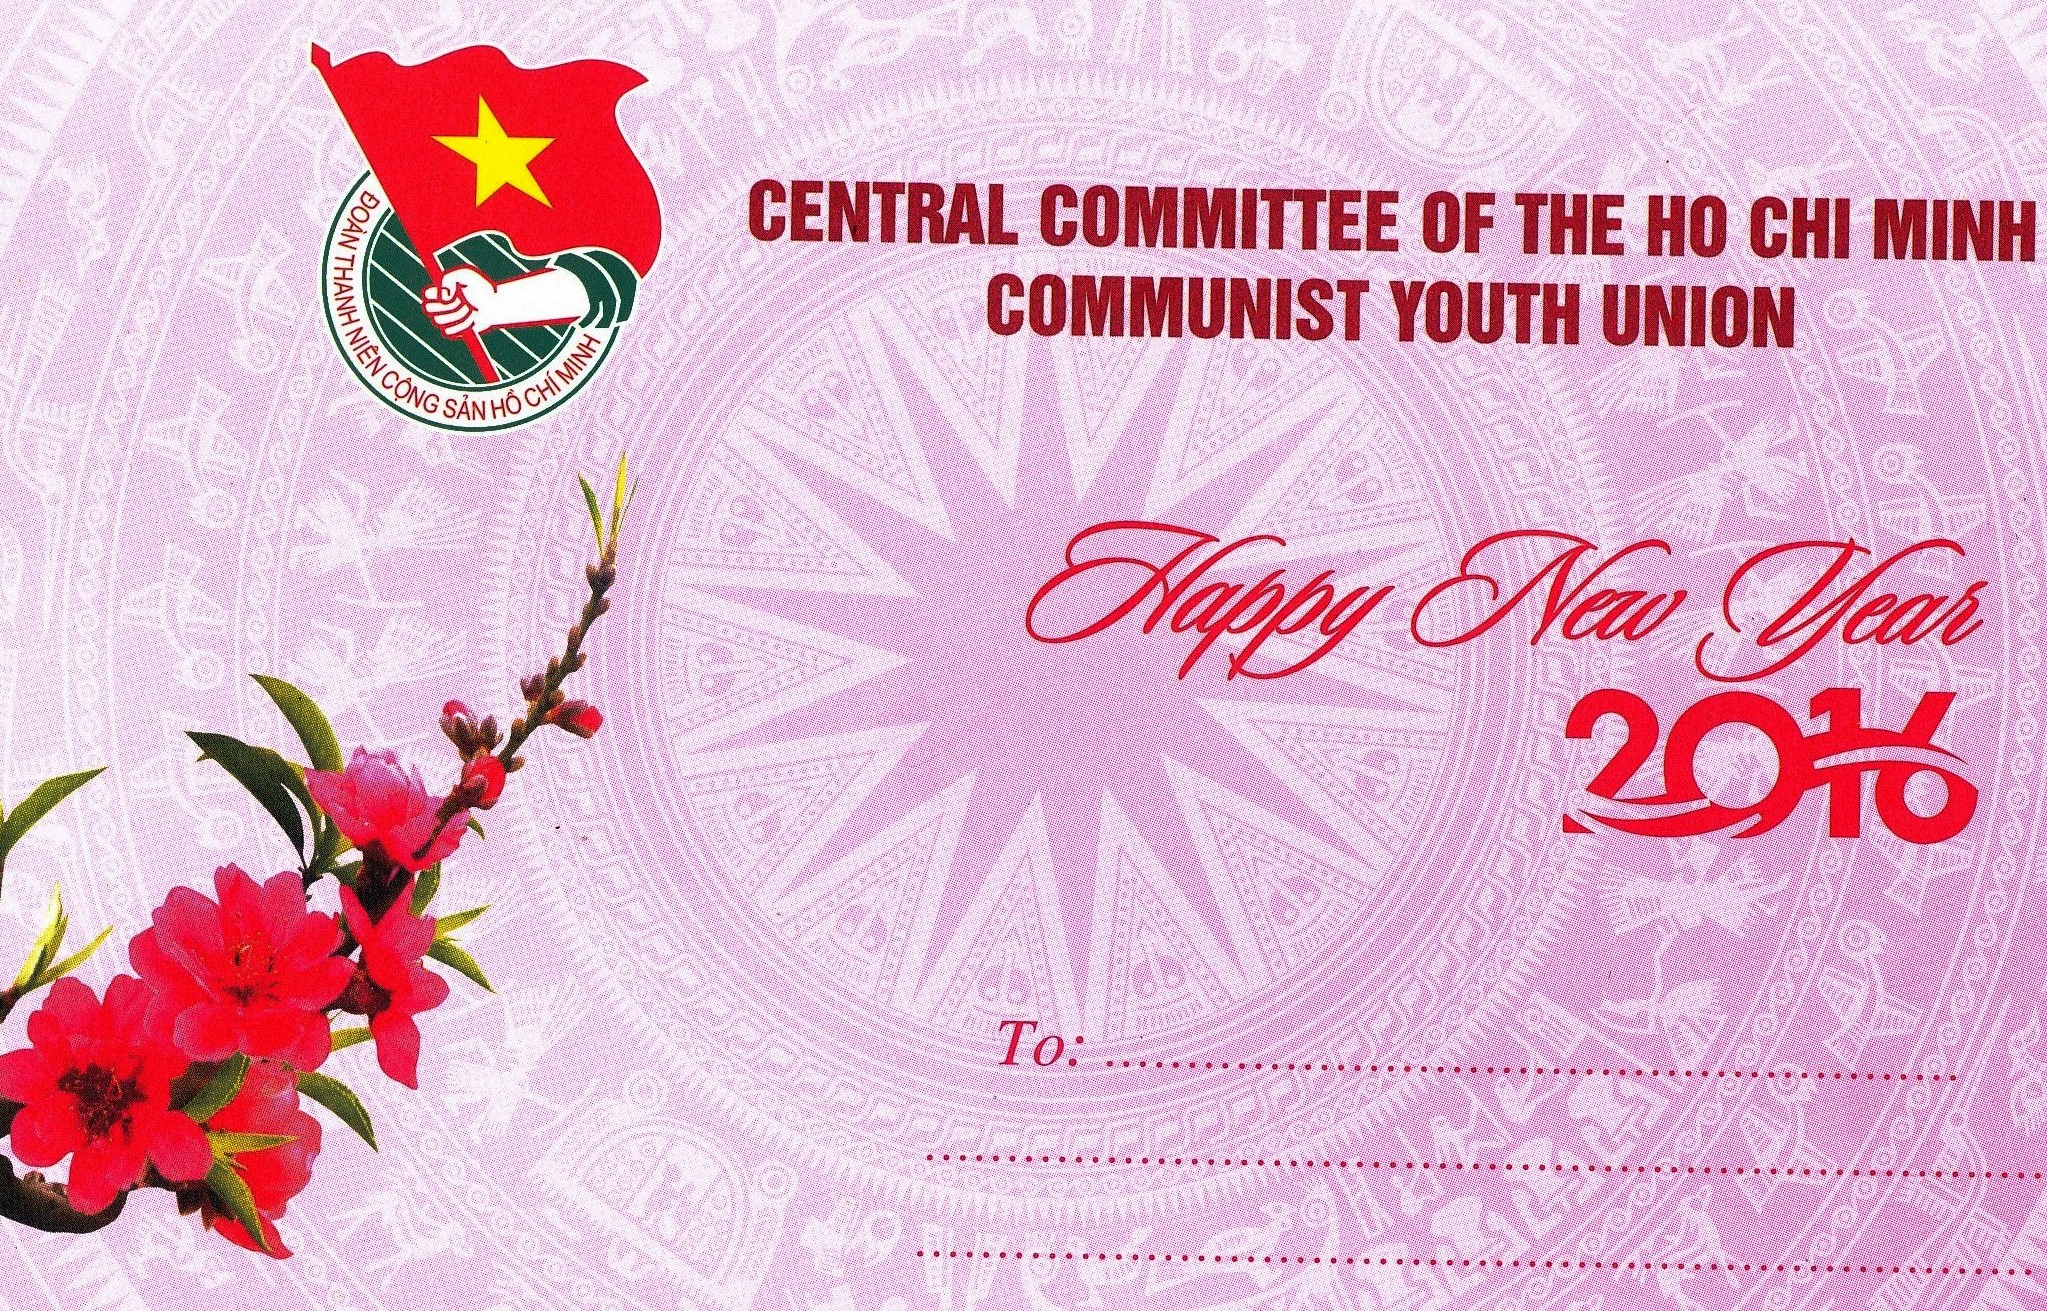 youth s activities viet se lunar new year is the long time traditional celebration in viet se culture the office of the ho chi minh communist youth union s central